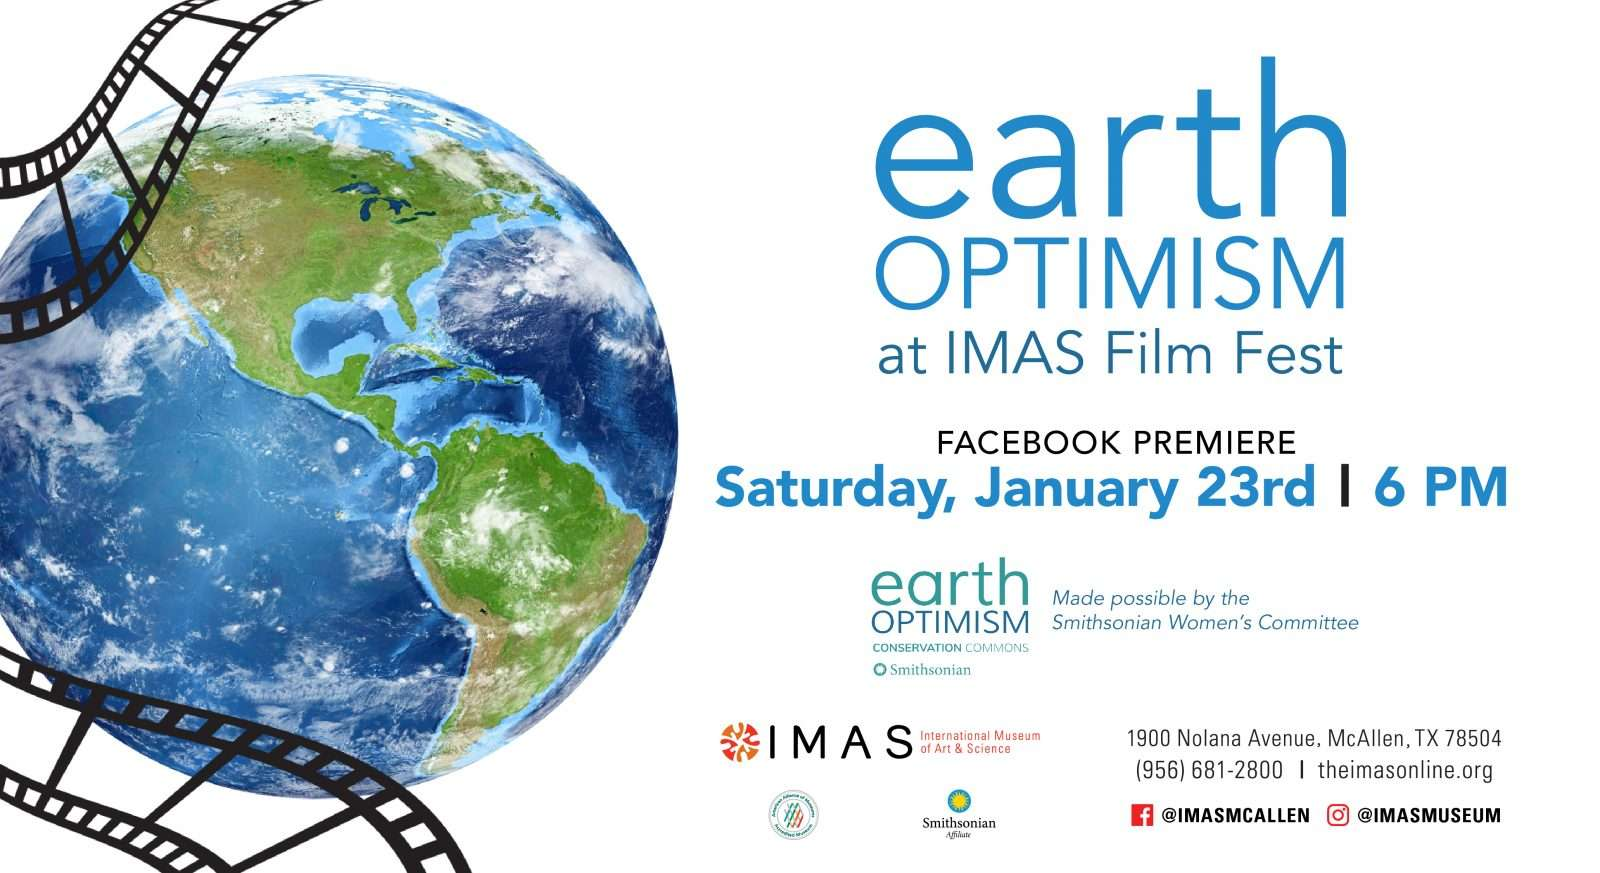 Earth Optimism Film Fest at IMAS